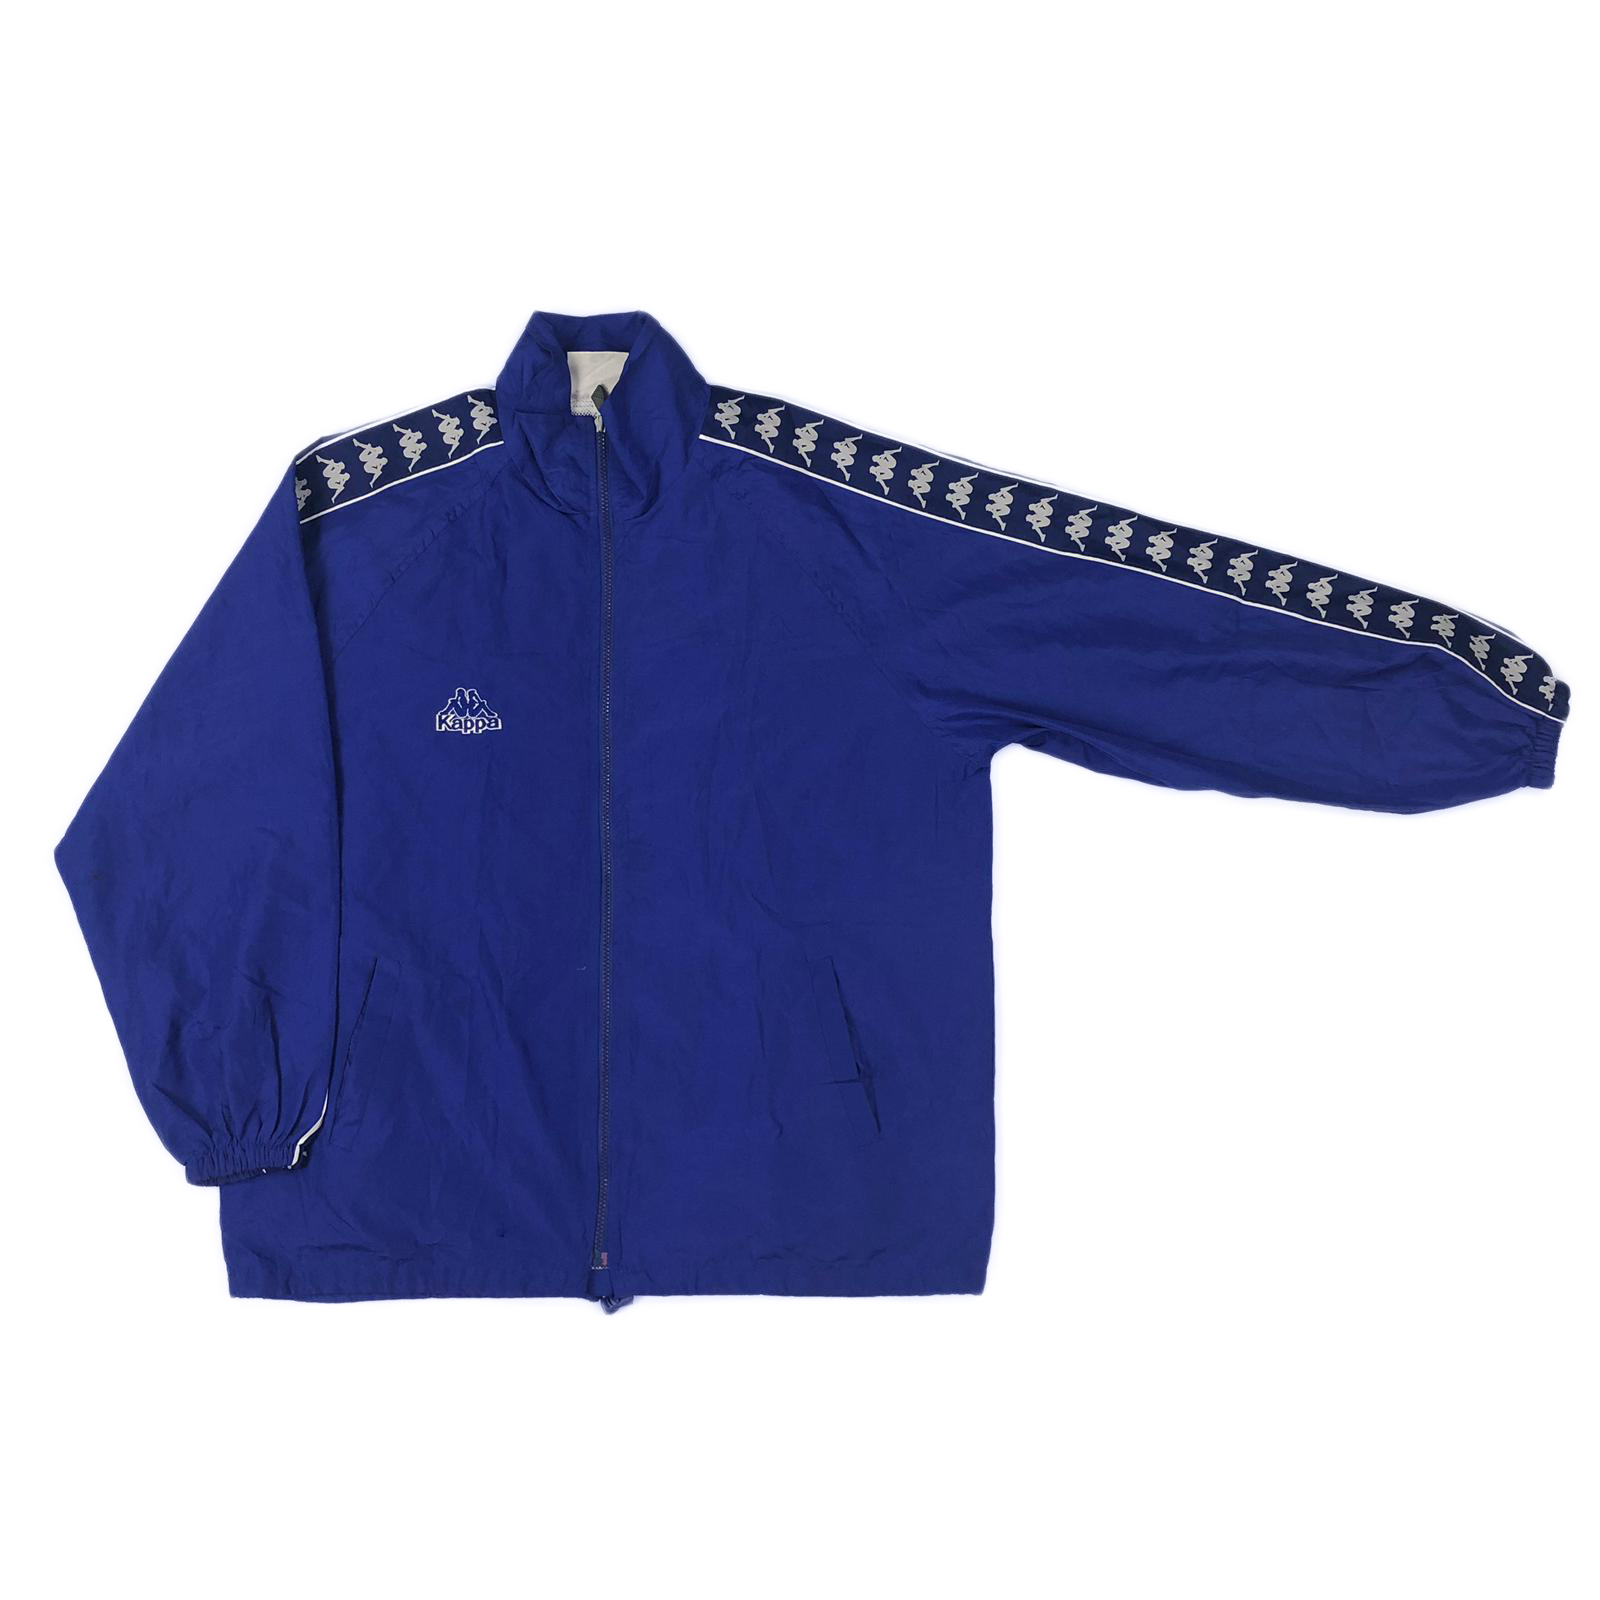 Kappa windbreaker jacket